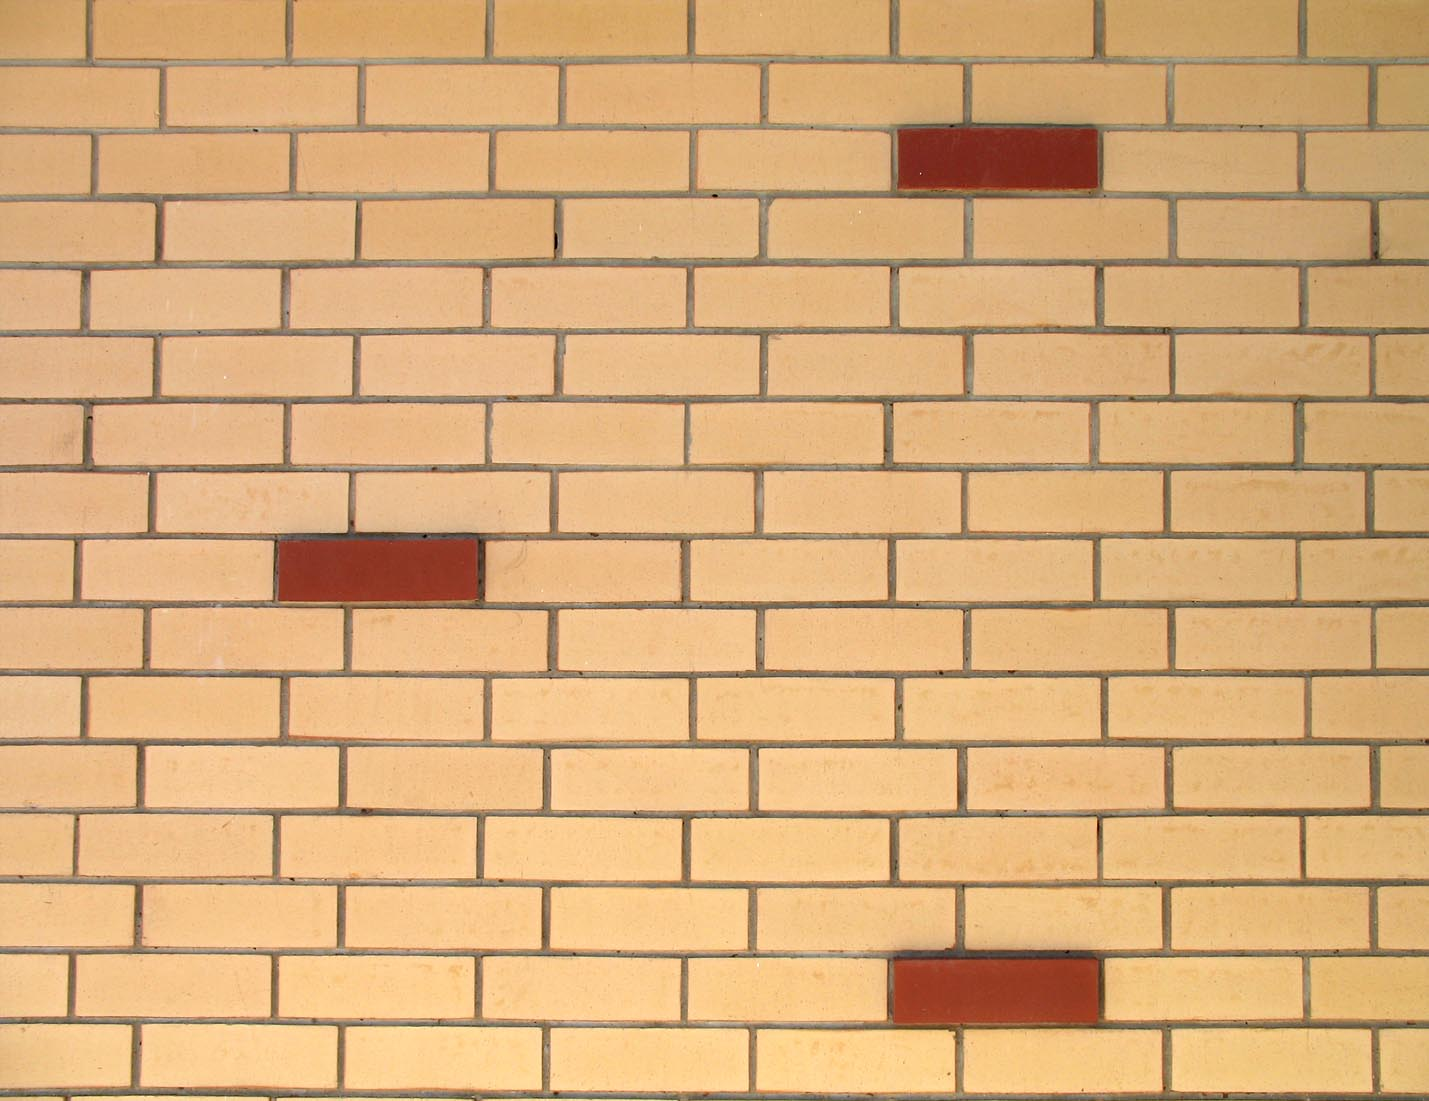 Exelent Decorative Brick Wall Patterns Inspiration - All About ...